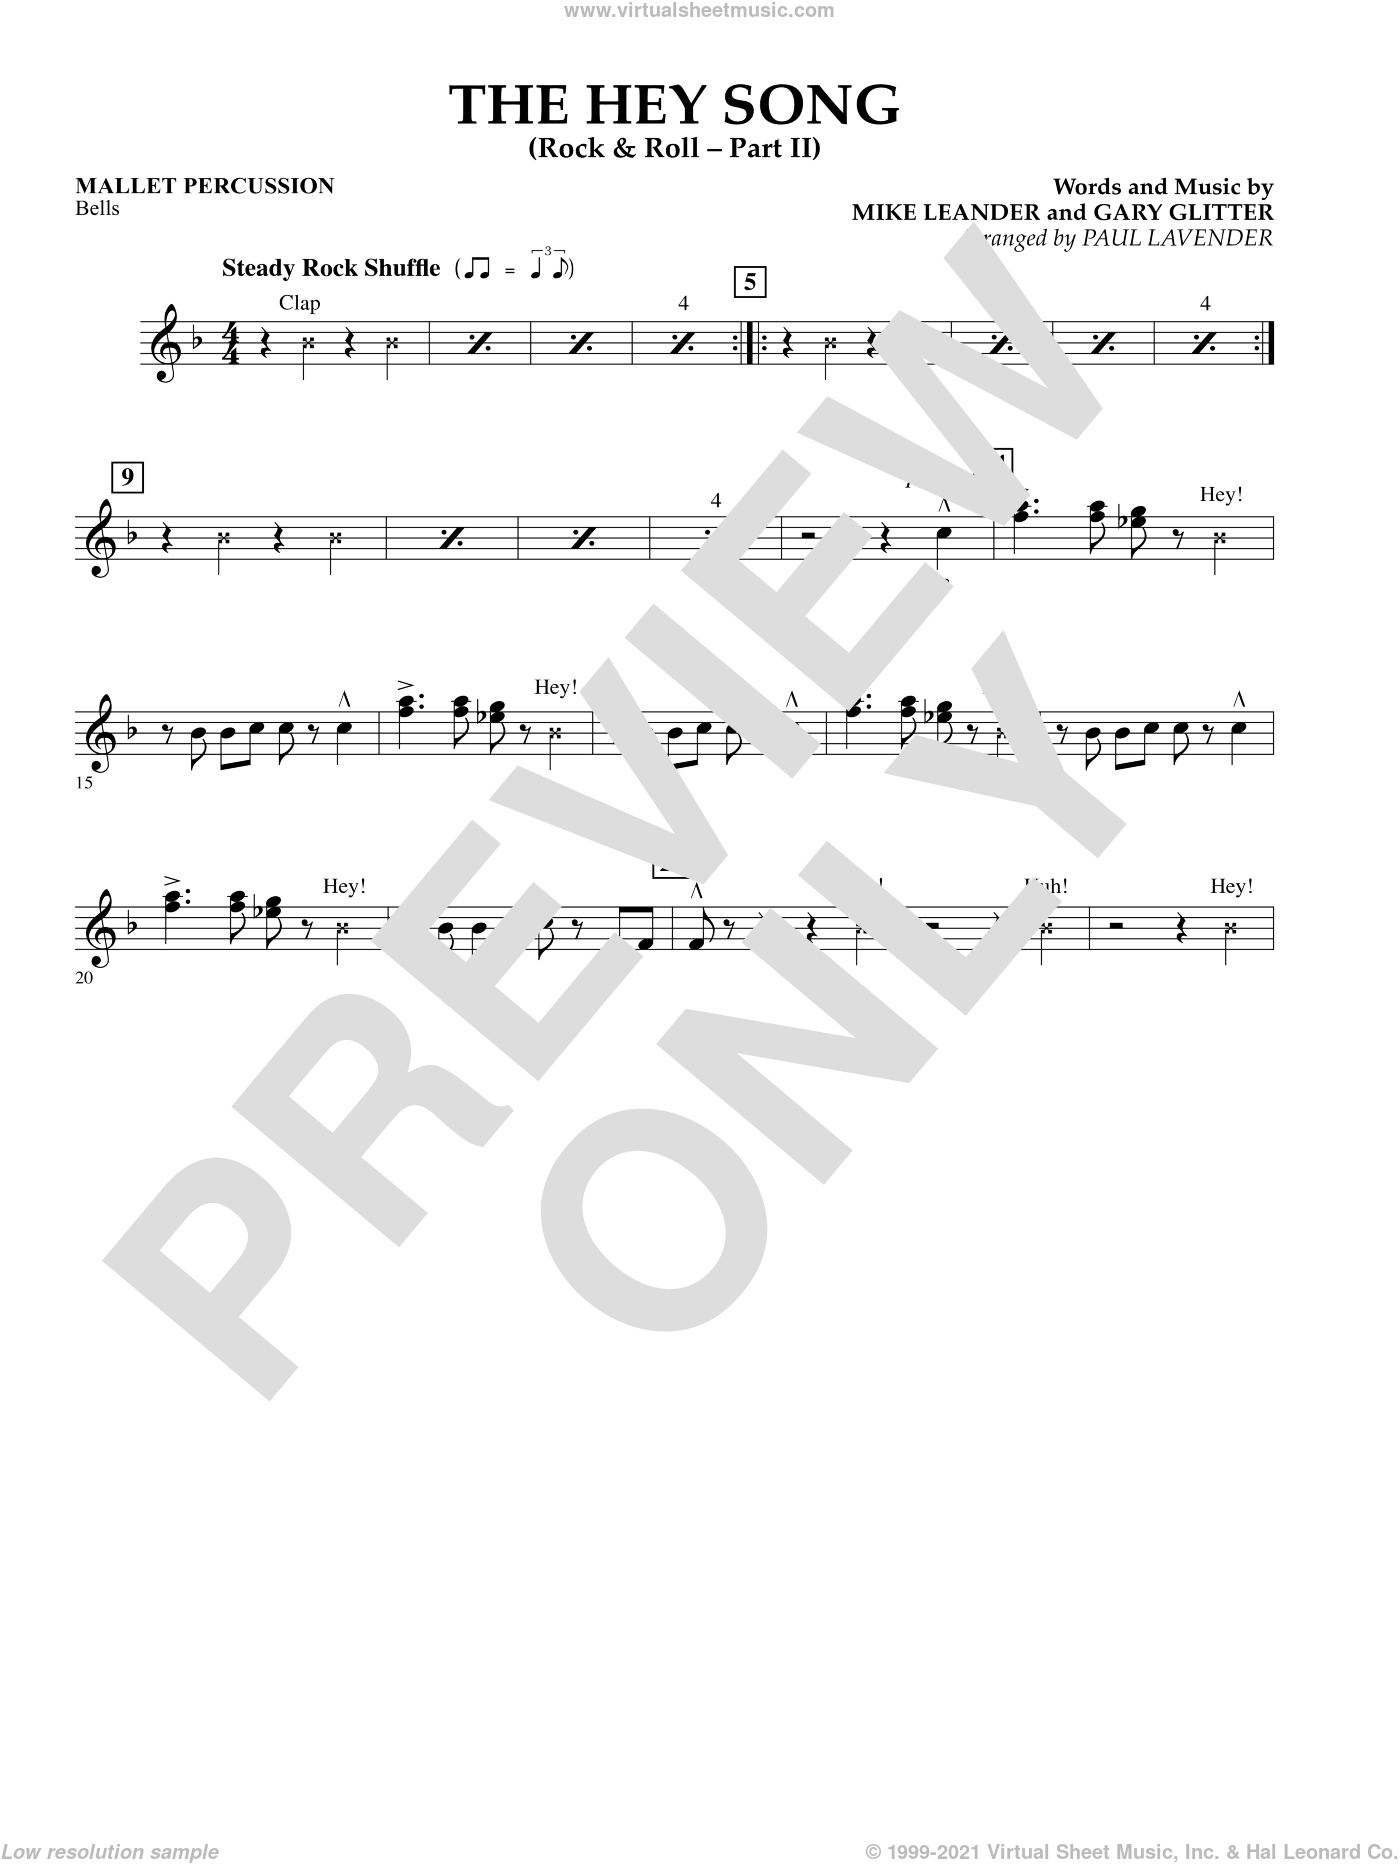 The Hey Song (Rock and Roll Part II) (Flex-Band) sheet music for concert band (mallet percussion) by Gary Glitter, Paul Lavender and Mike Leander, intermediate skill level